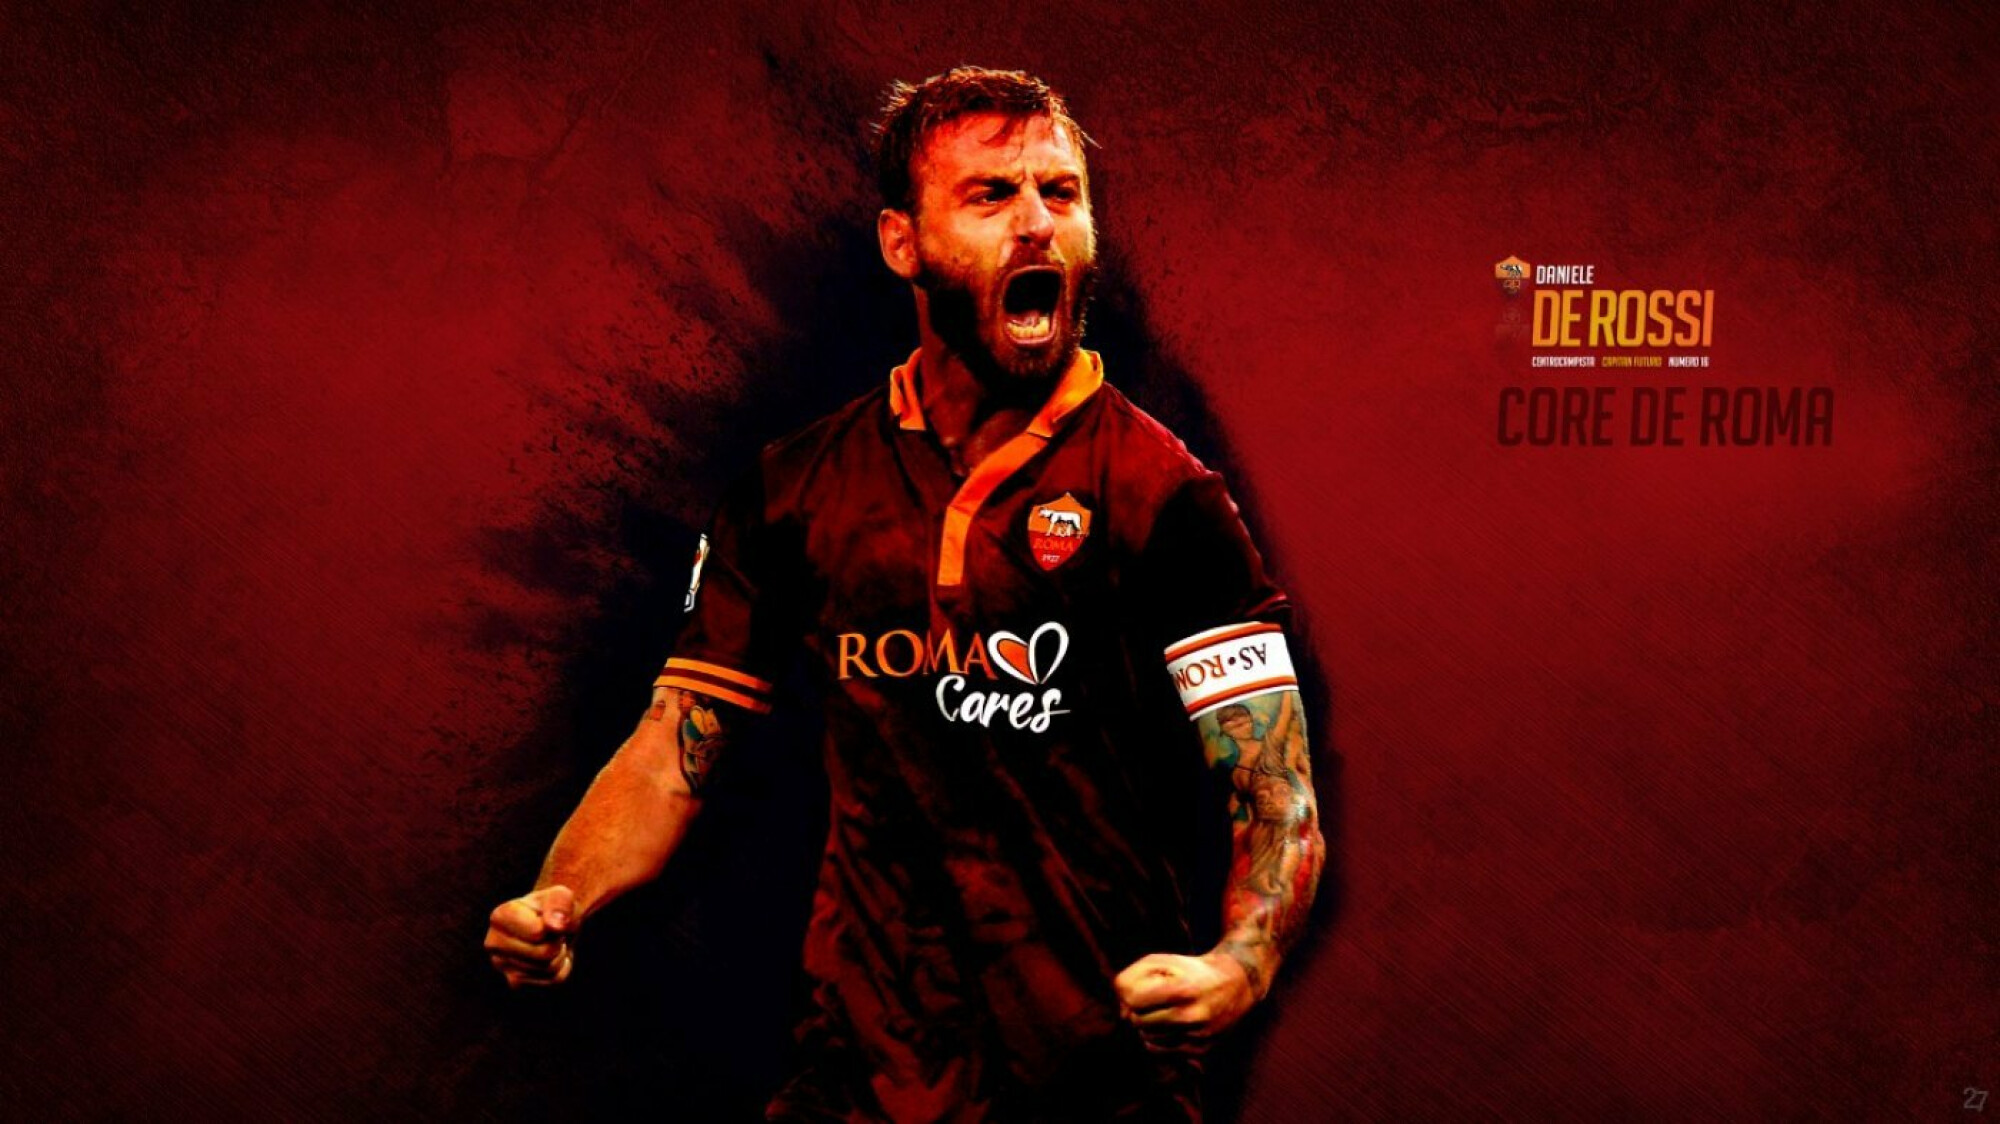 BREAKING NEWS: One club man - Daniele De Rossi leaves AS Roma